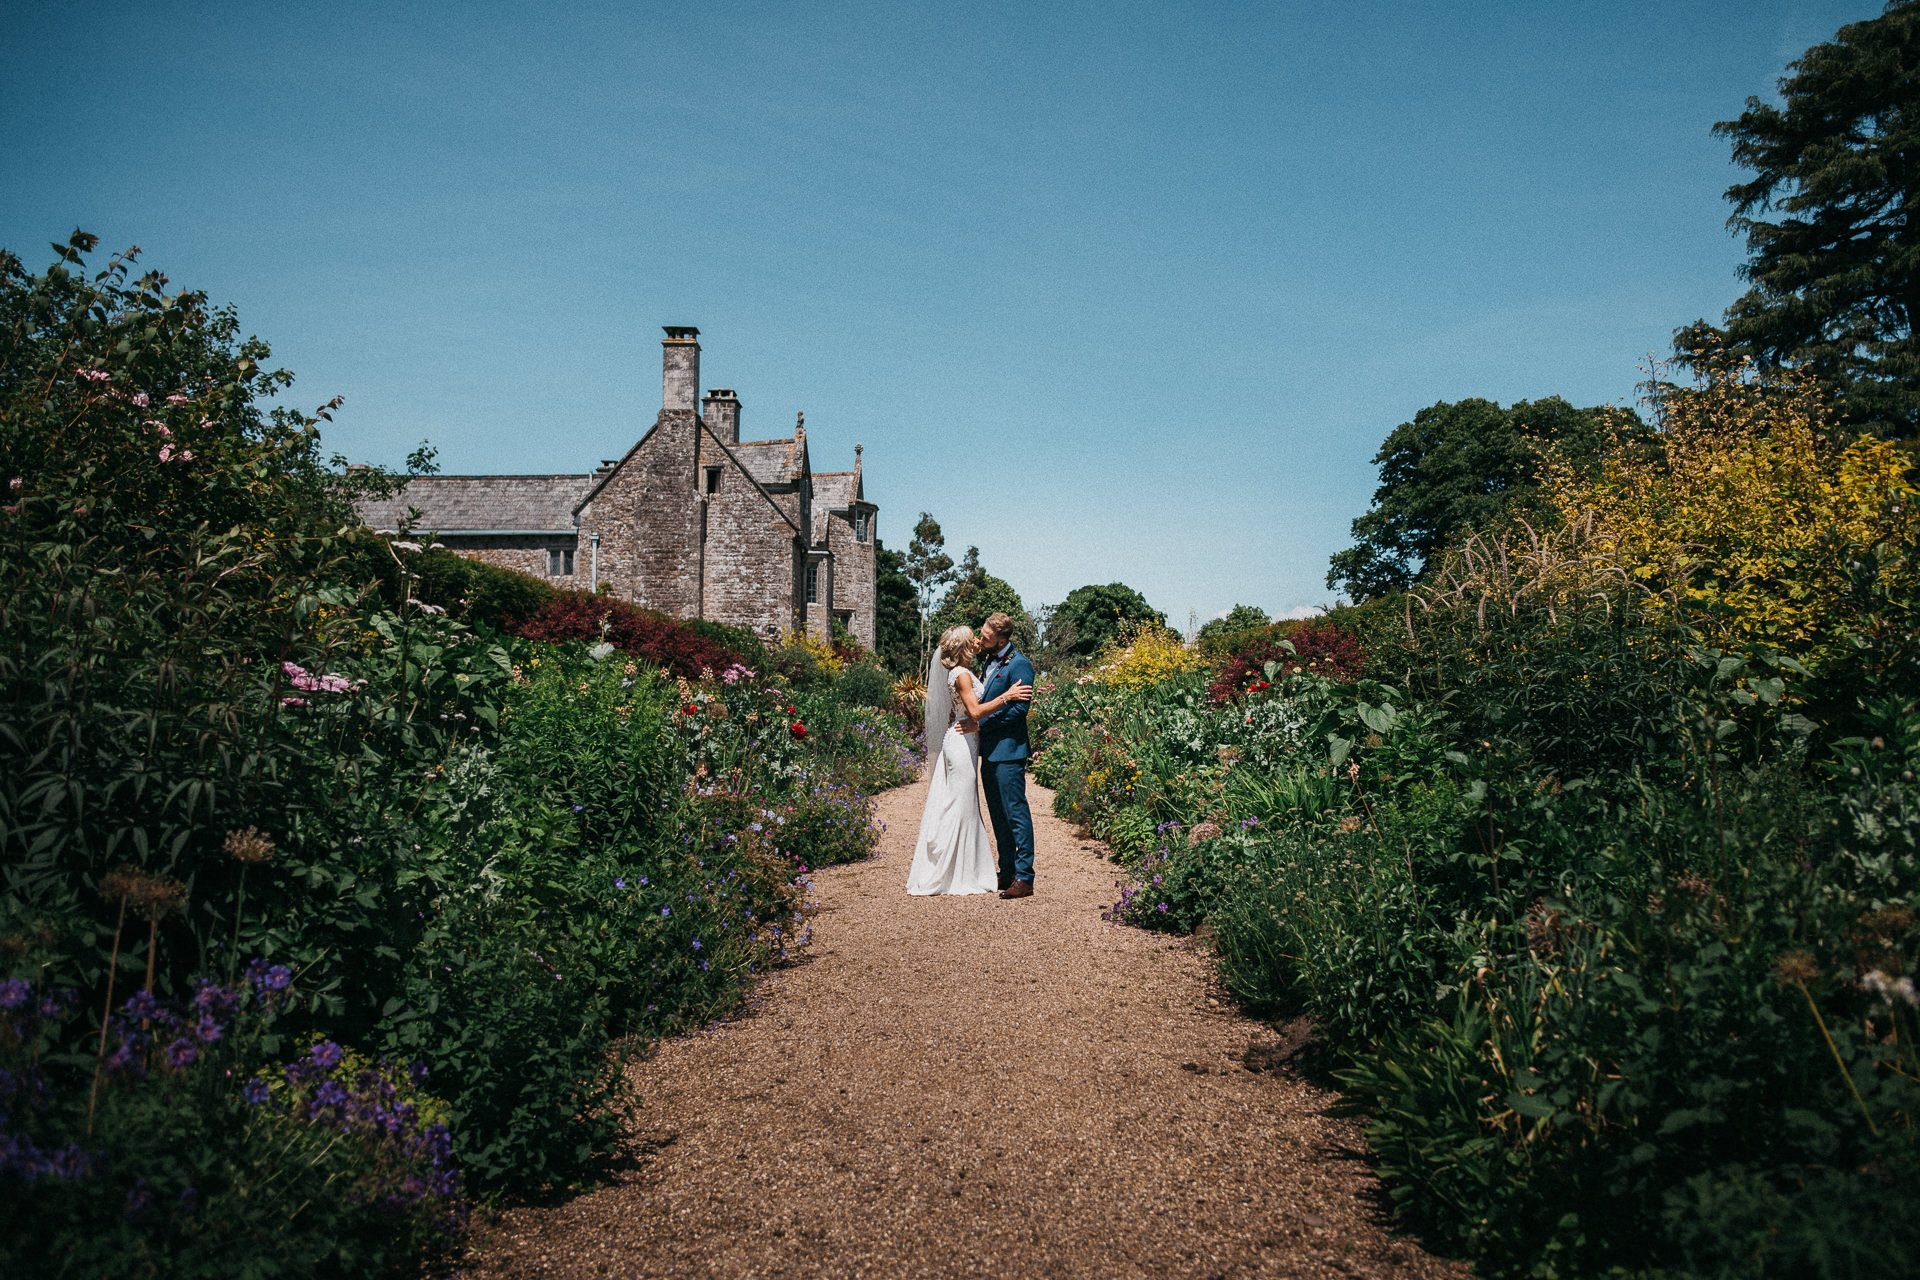 0088-DEVON-SOMERSET-WEDDING-PHOTOGRAPHER-0384-BEST-OF-2019-LOUISE-MAY-DEVON-SOMERSET-WEDDING-PHOTOGRAPHY-LM2_1591